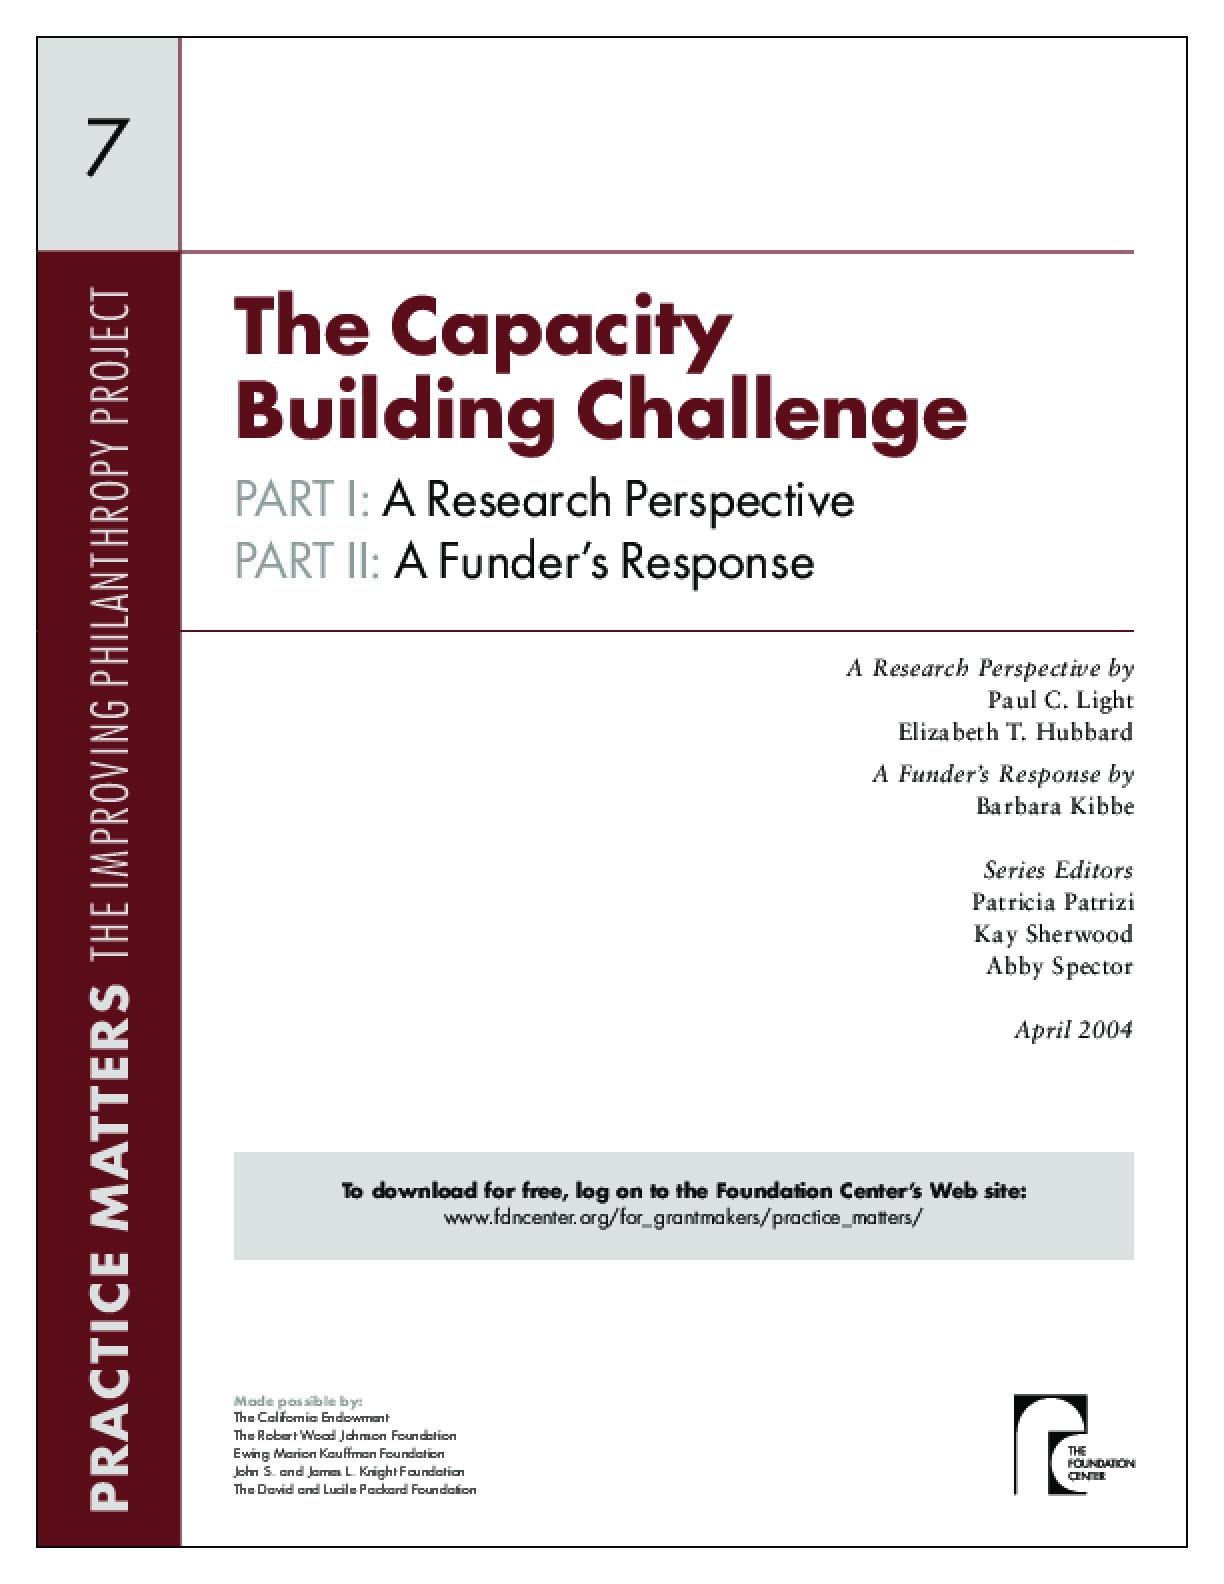 The Capacity Building Challenge -- Part II: A Funder's Response